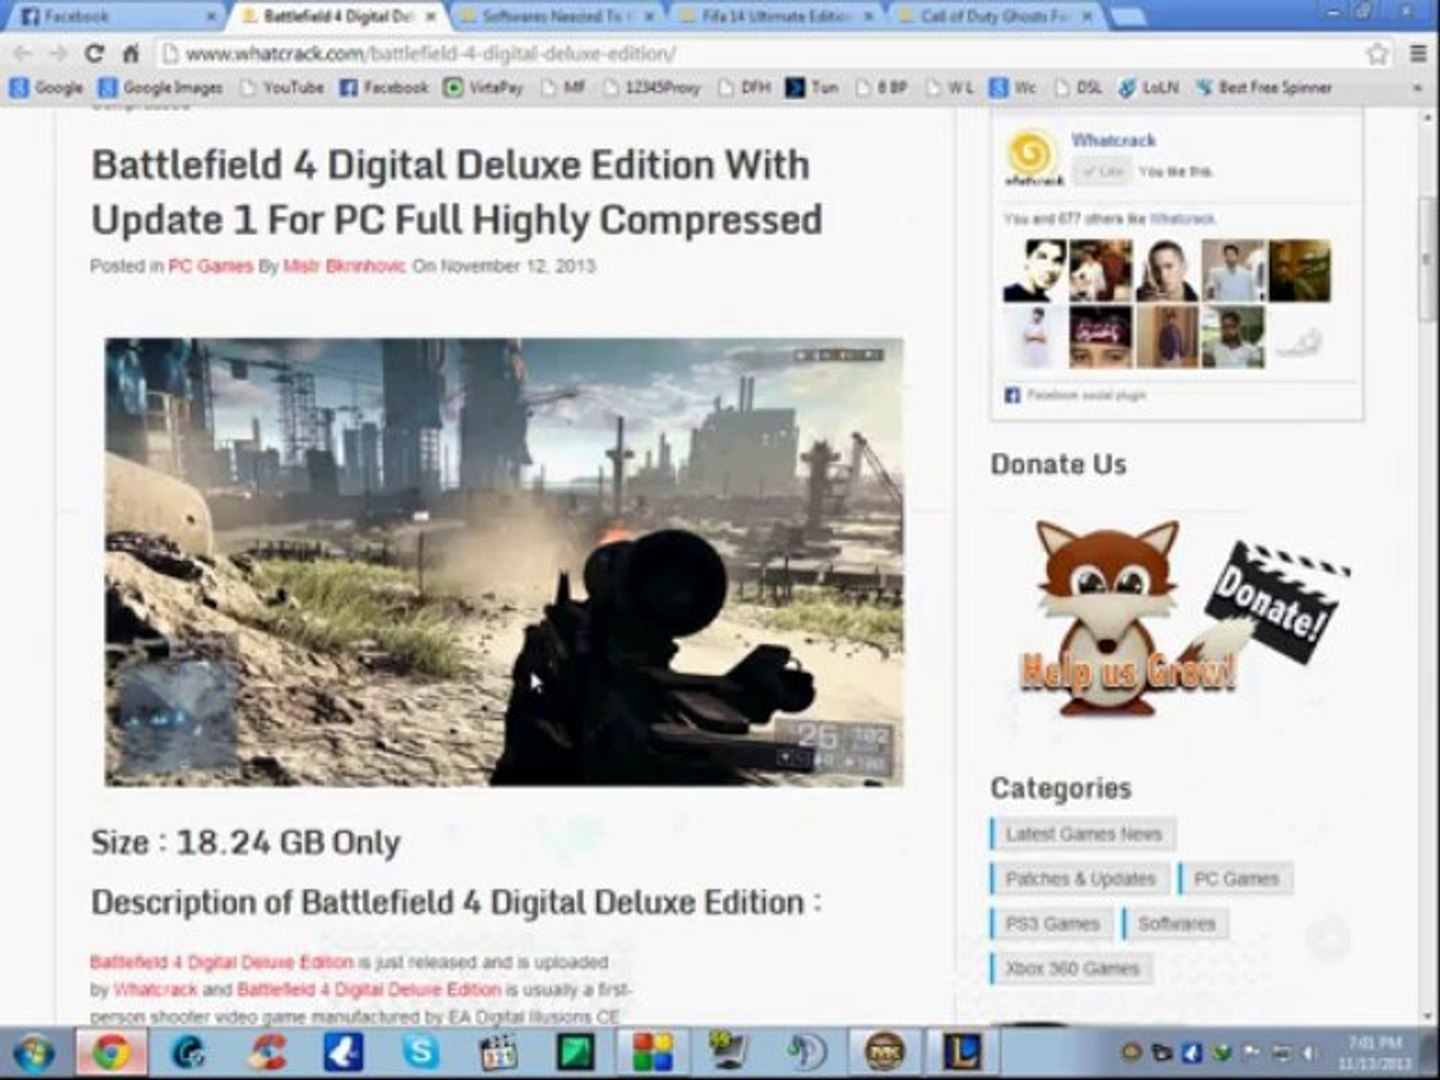 Latest Games For PC PS3 And Xbox 360 Full Highly Compressed Repacked And  Latest Cracked Softwares With Crack